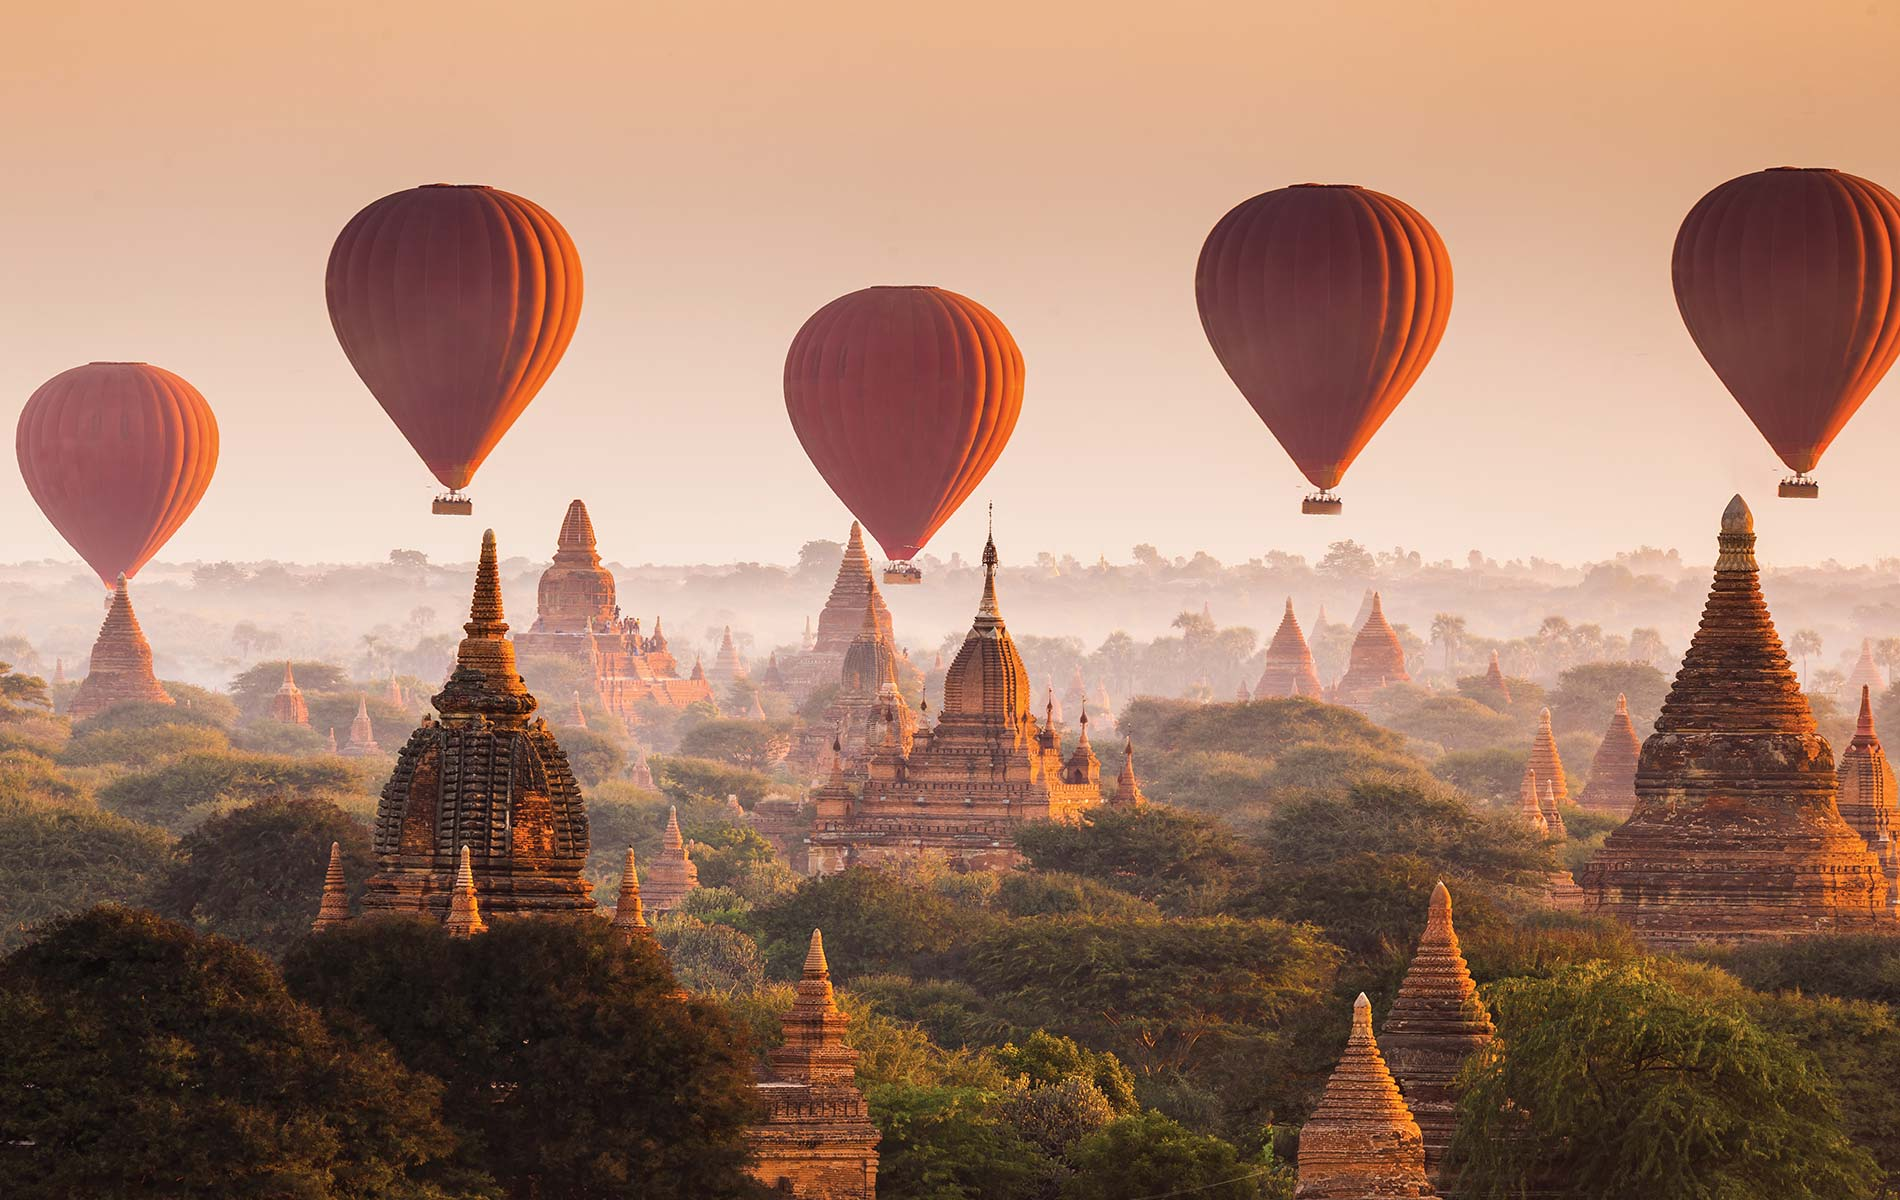 Hot air balloons soaring over the ancient city of Bagan are a quintessential sight of Myanmar. See them for yourself on Acanela's Myanmar and Laos expedition.